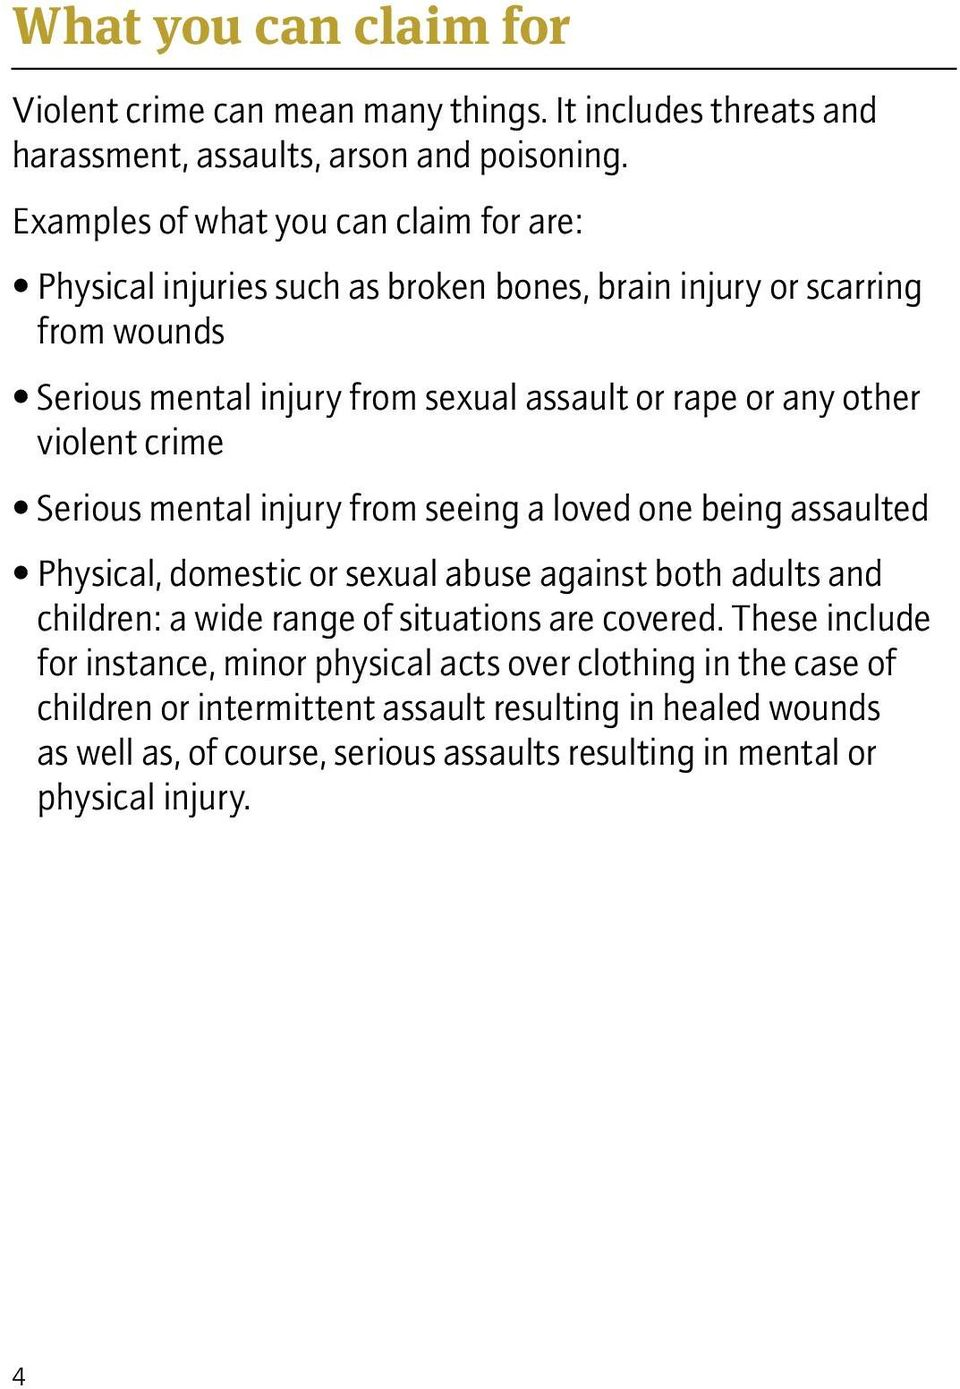 other violent crime Serious mental injury from seeing a loved one being assaulted Physical, domestic or sexual abuse against both adults and children: a wide range of situations